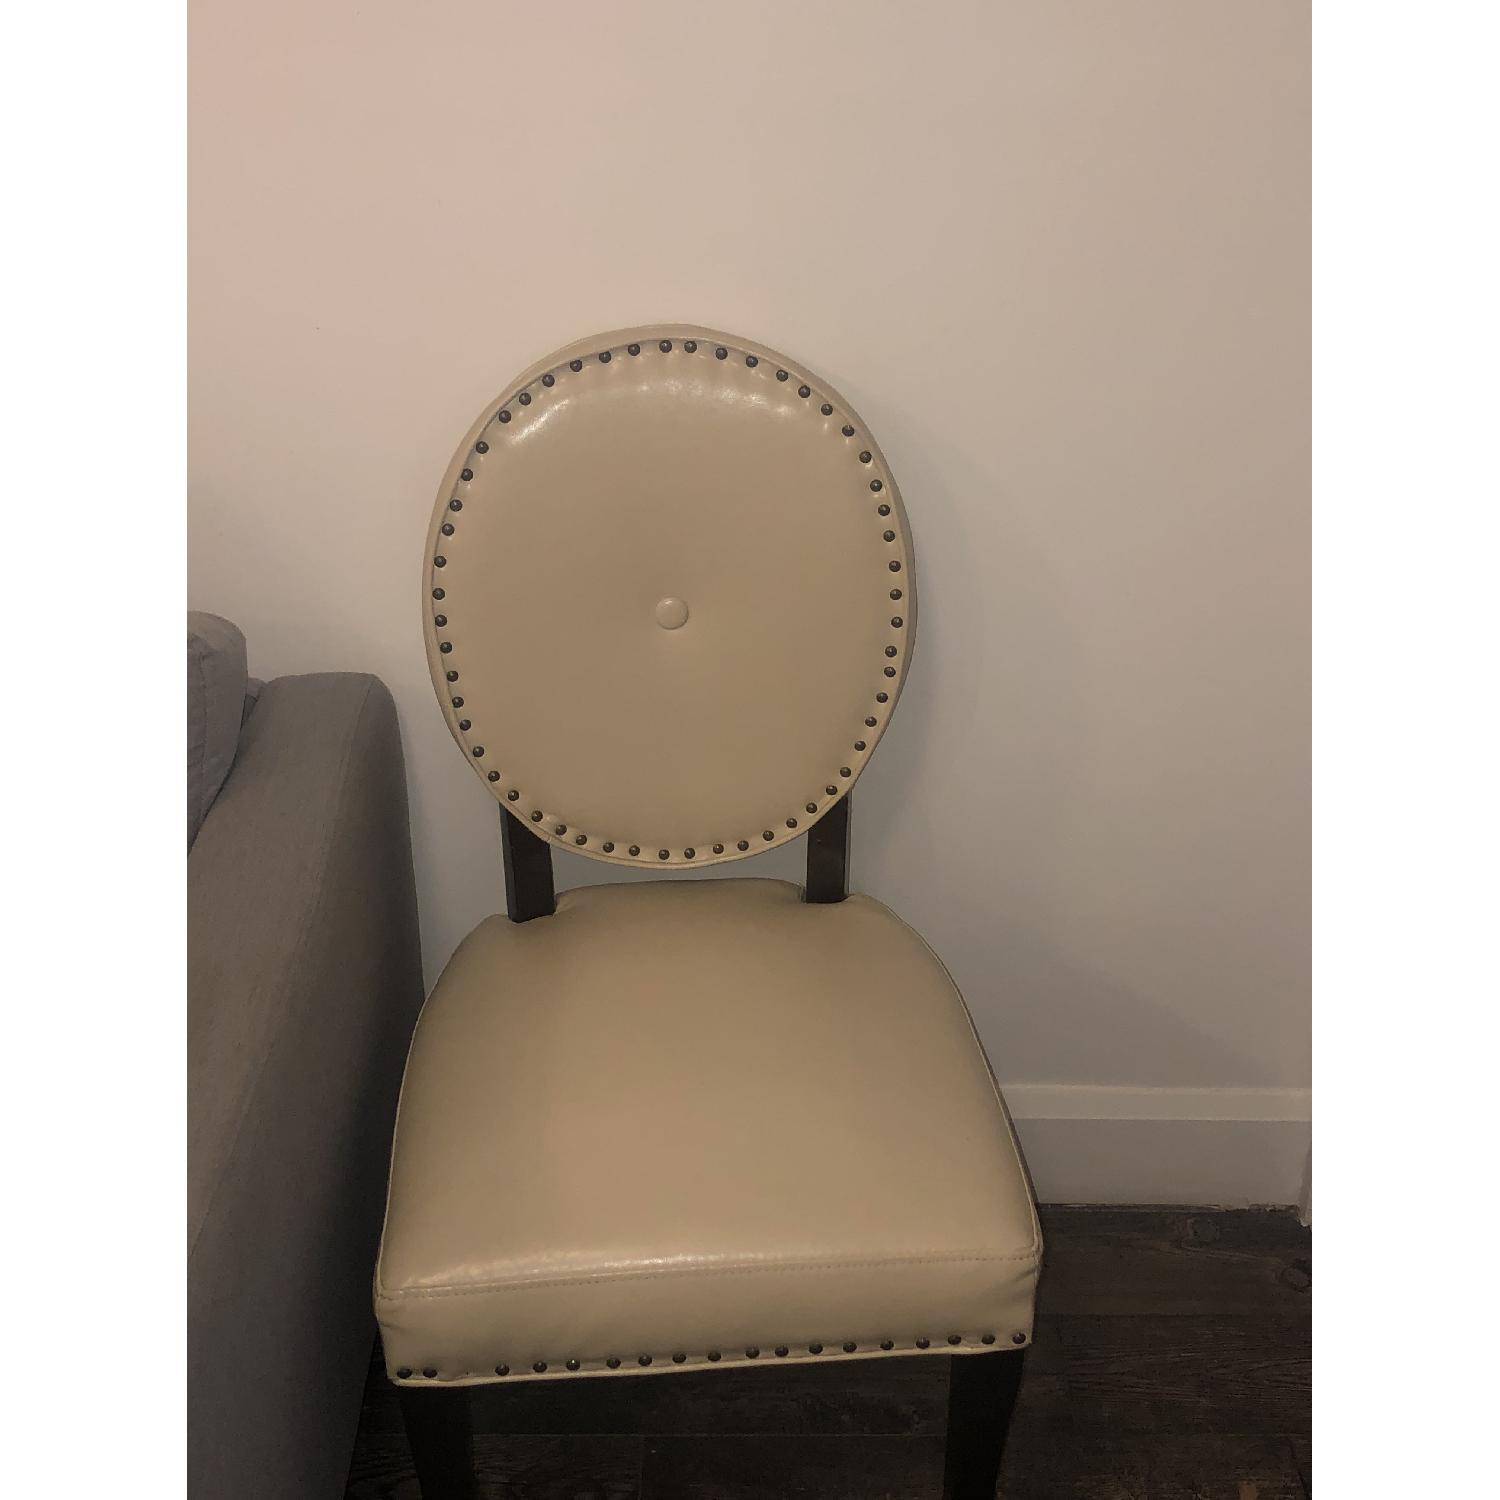 Pier 1 Cadence Ivory Dining Chair - image-3